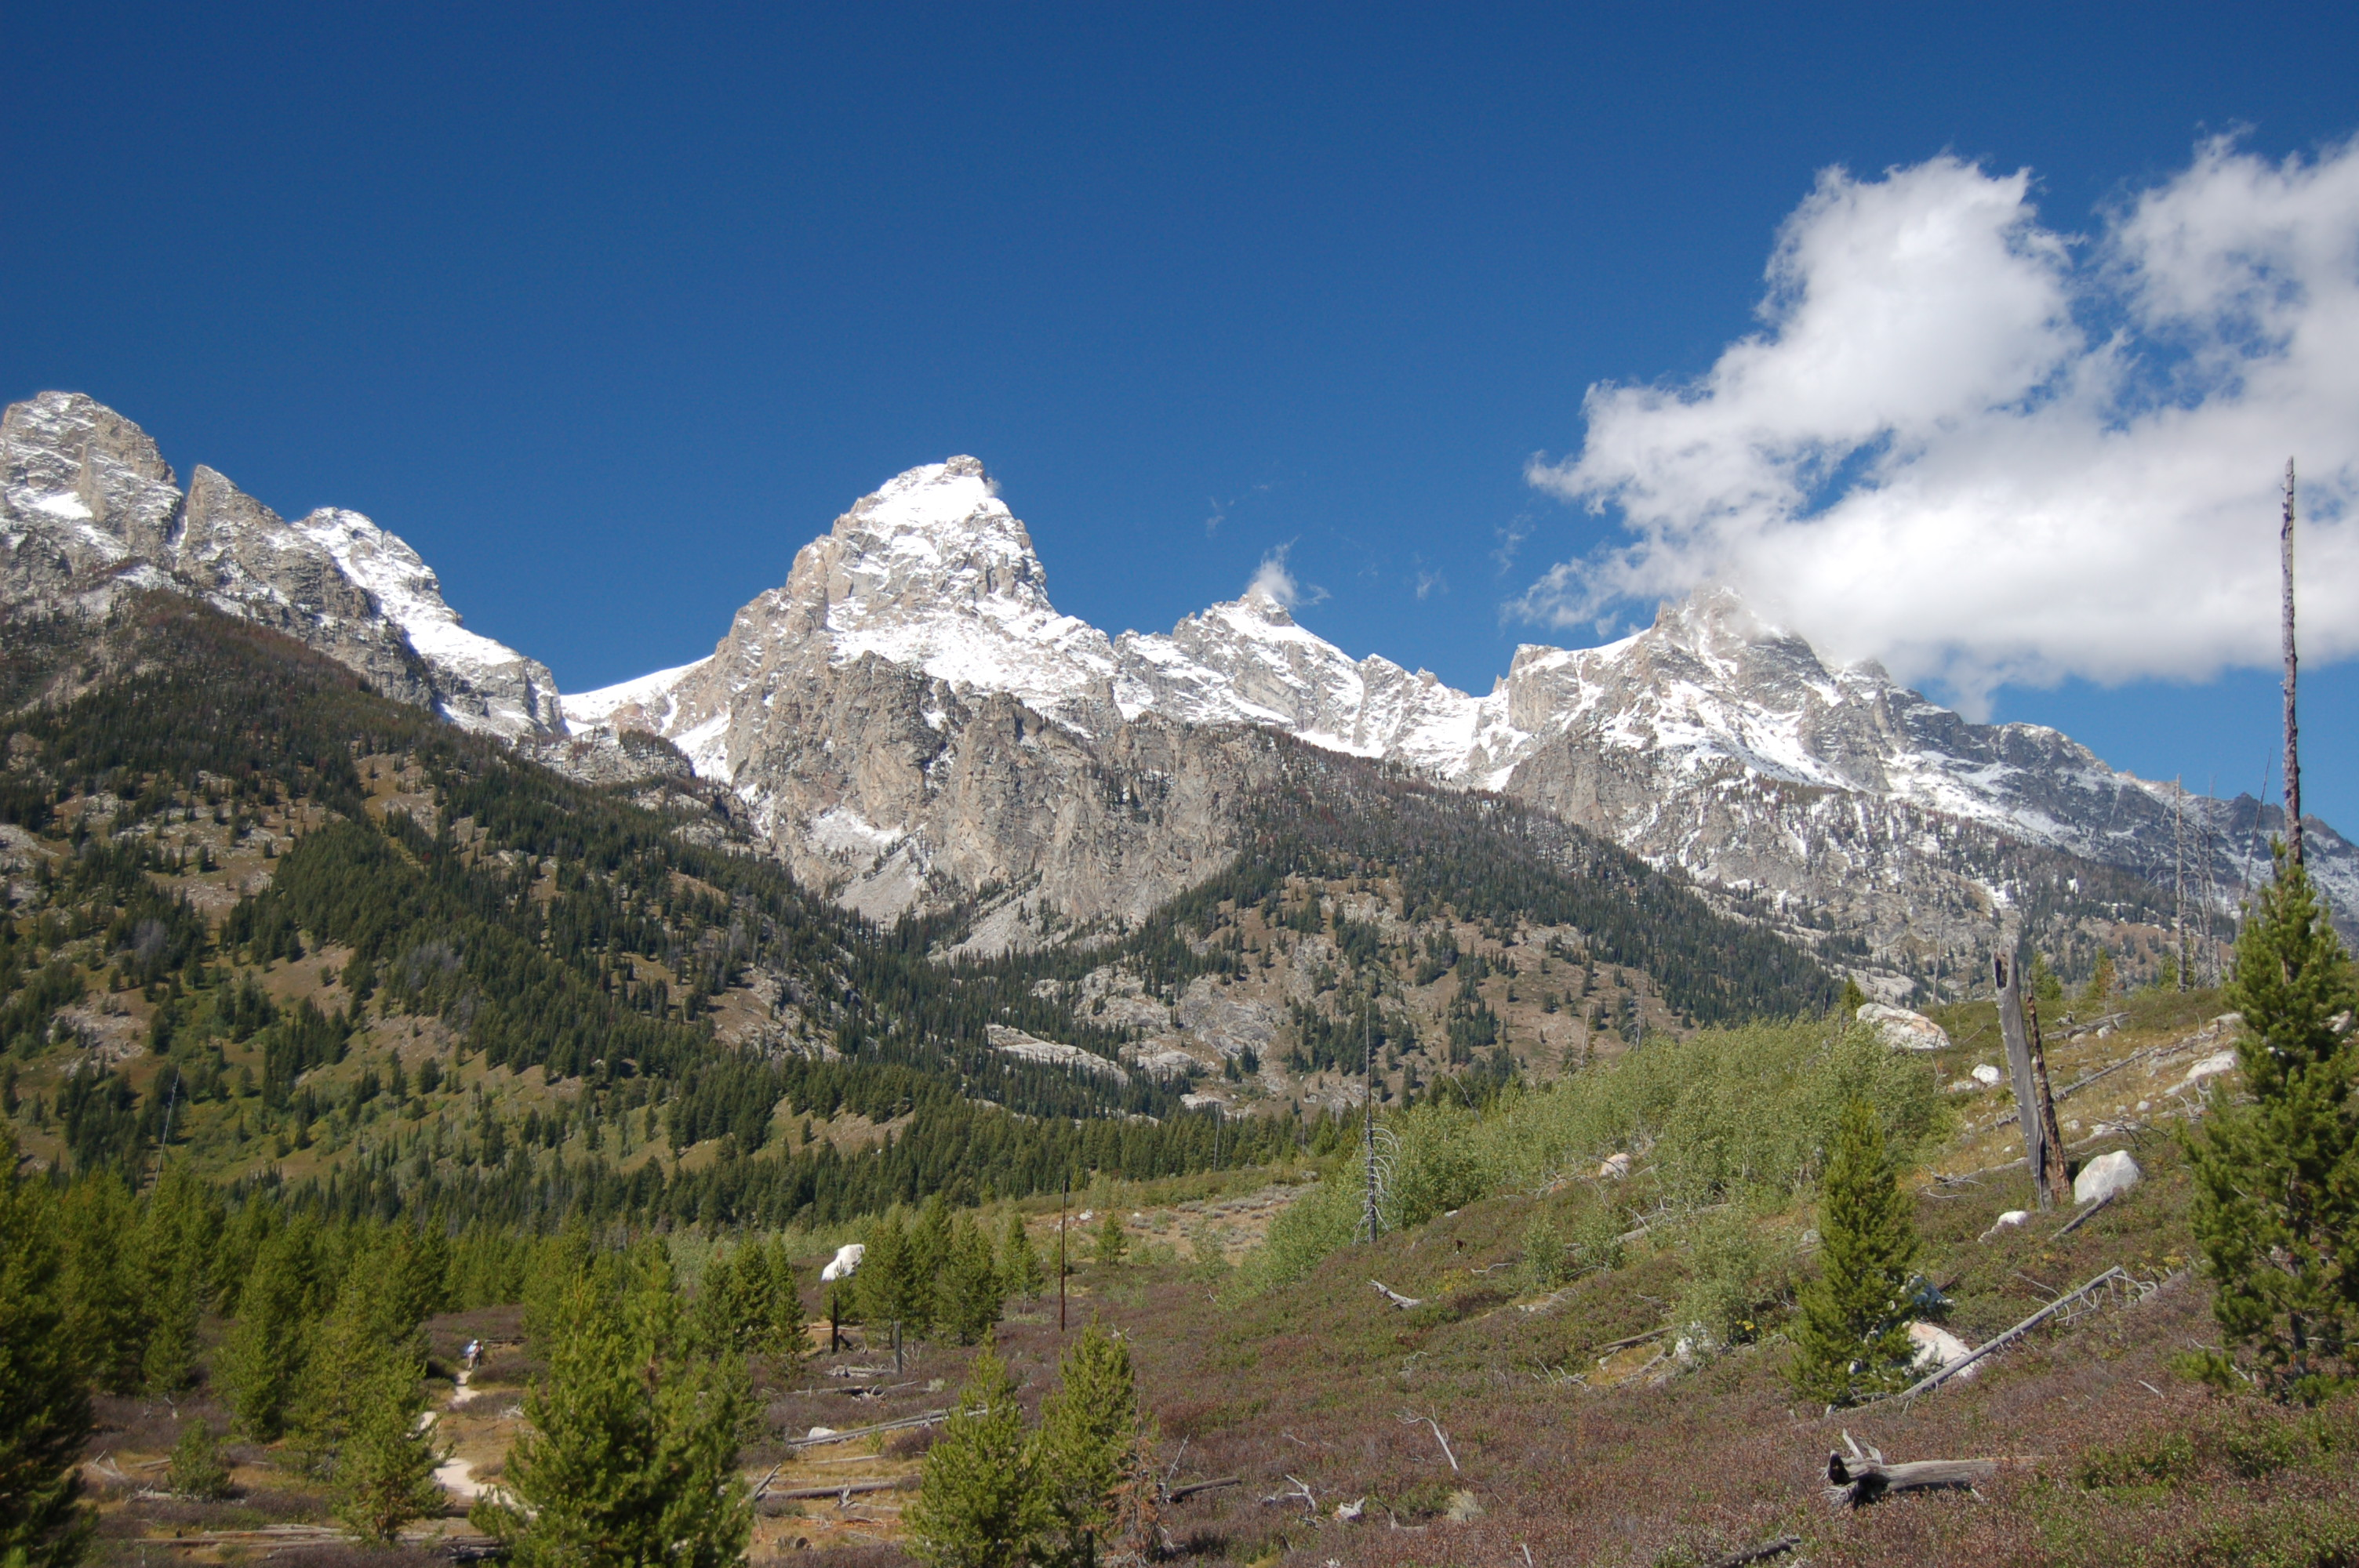 Rangers Respond To A Climbing Fatality On The Grand Teton